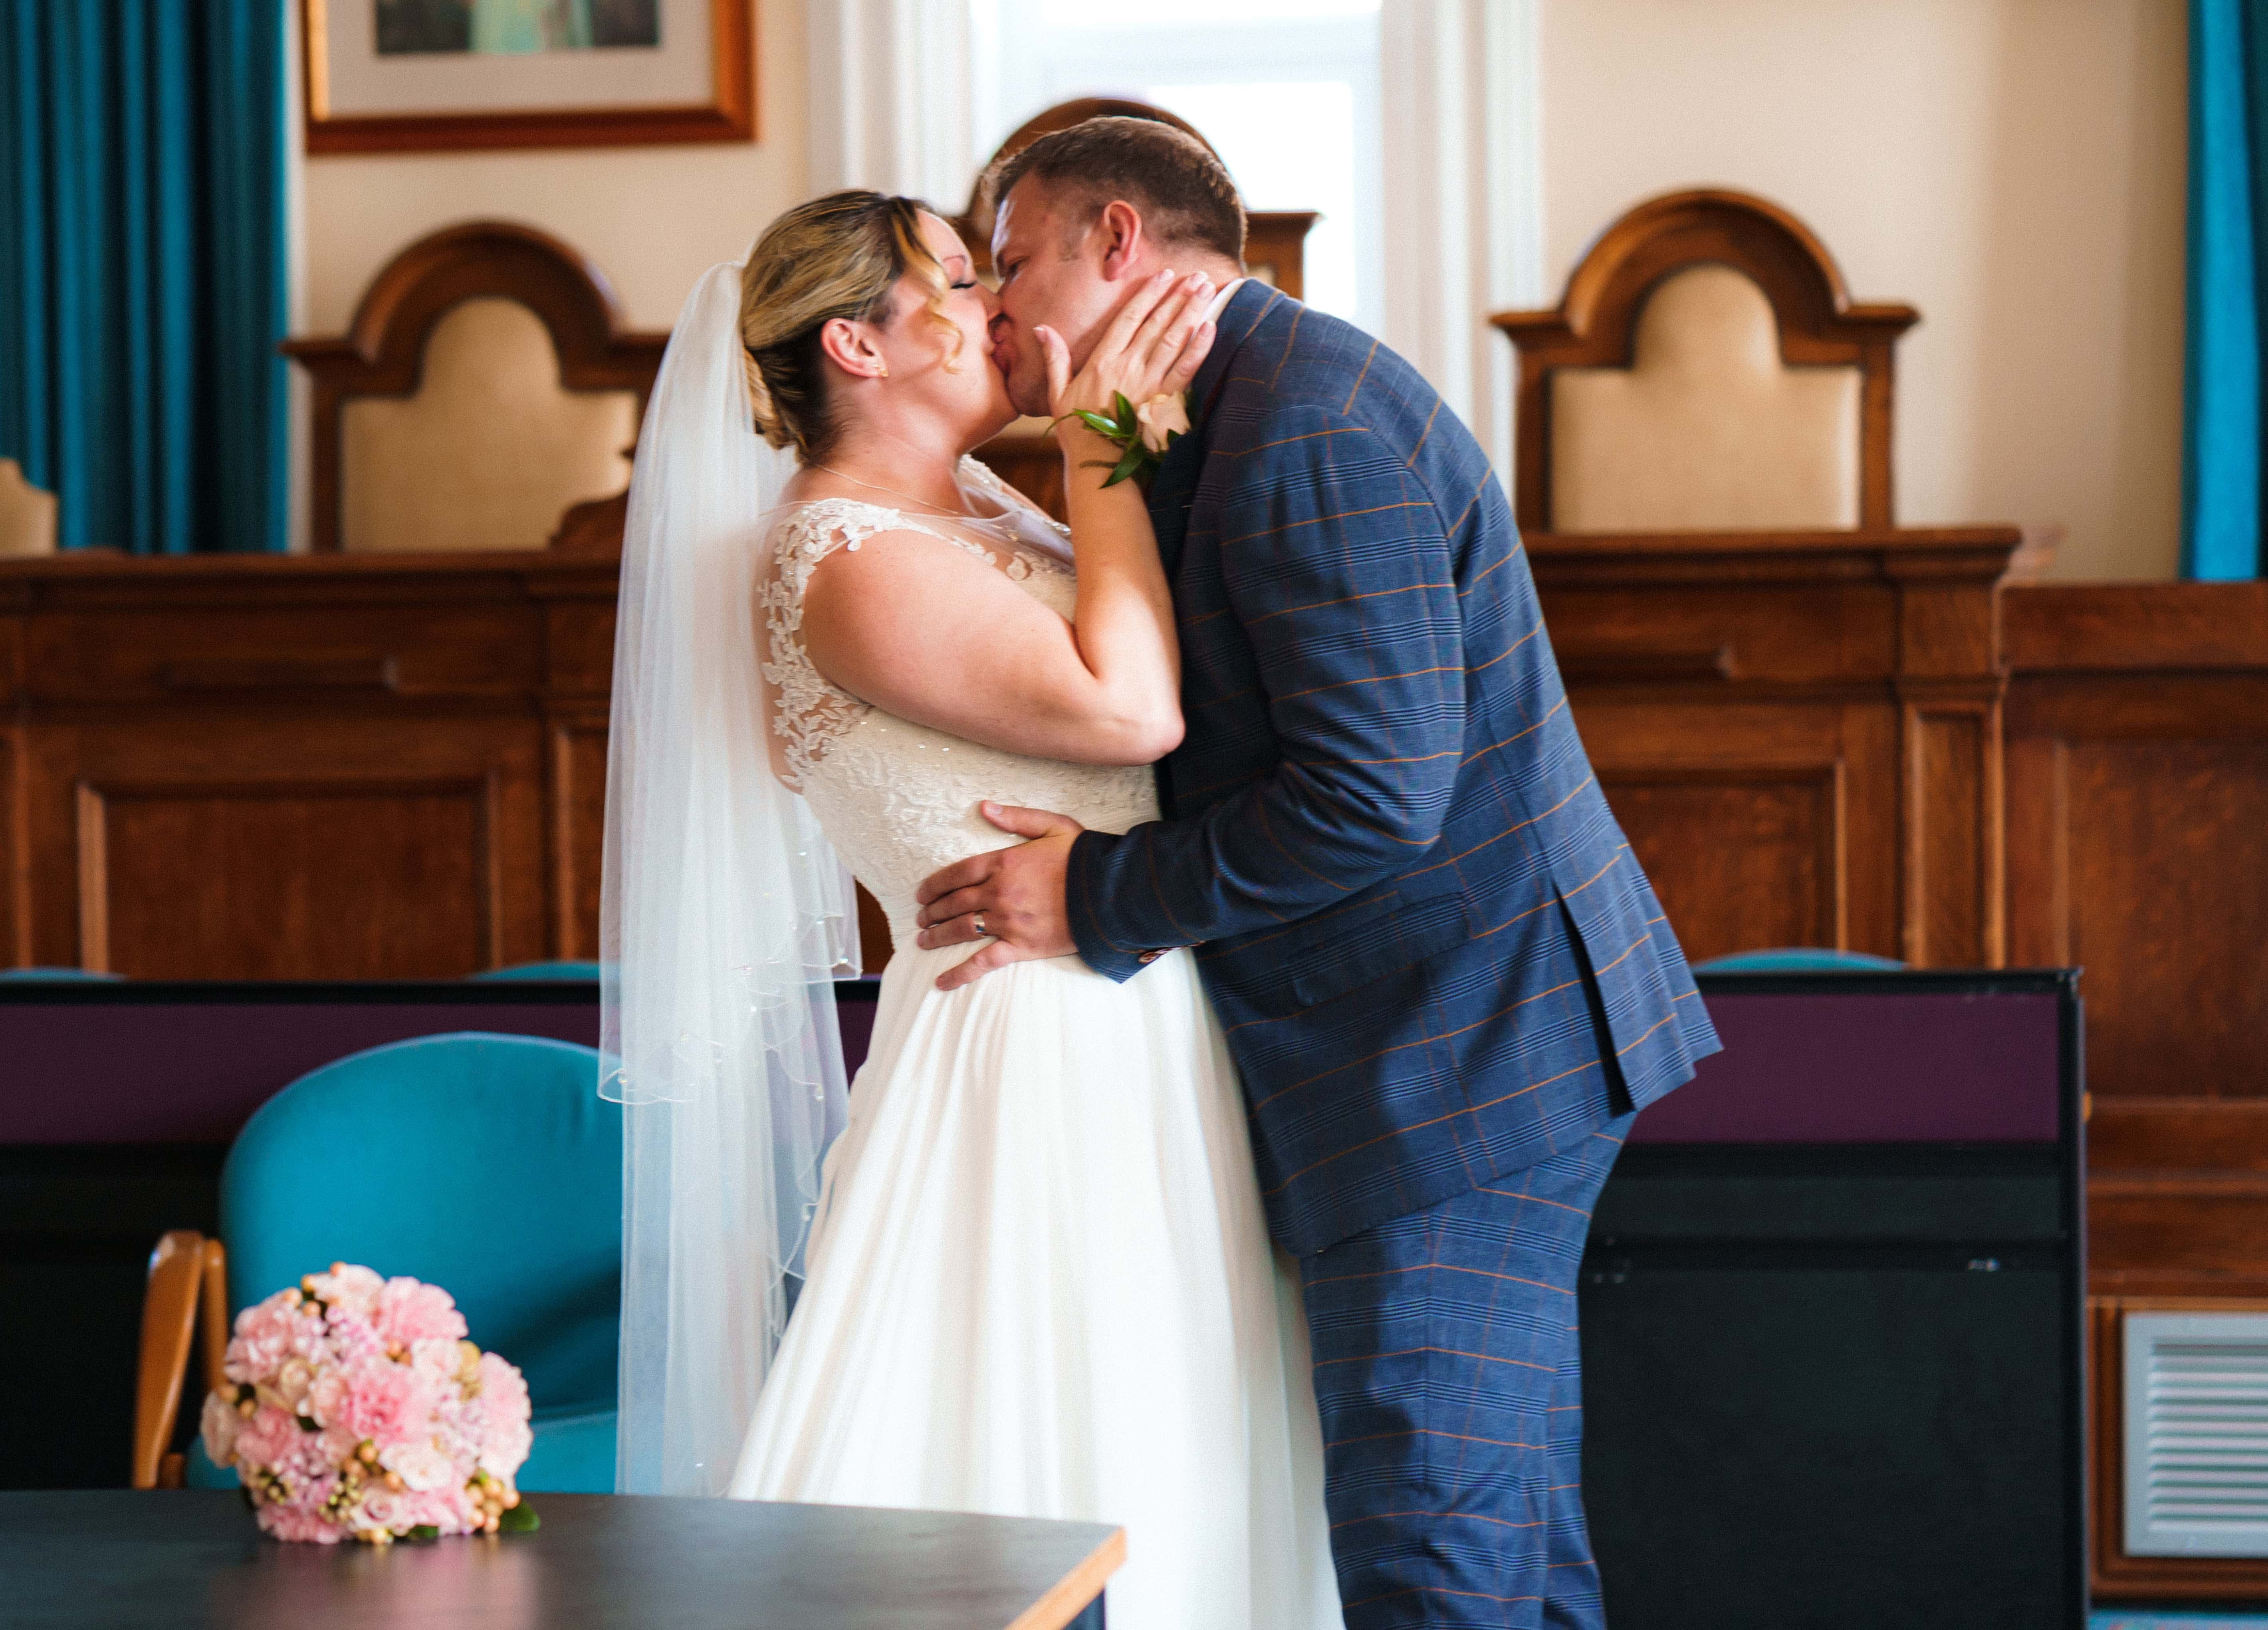 Ripley Wedding Photographer, Derbyshire wedding photographer, local photographer